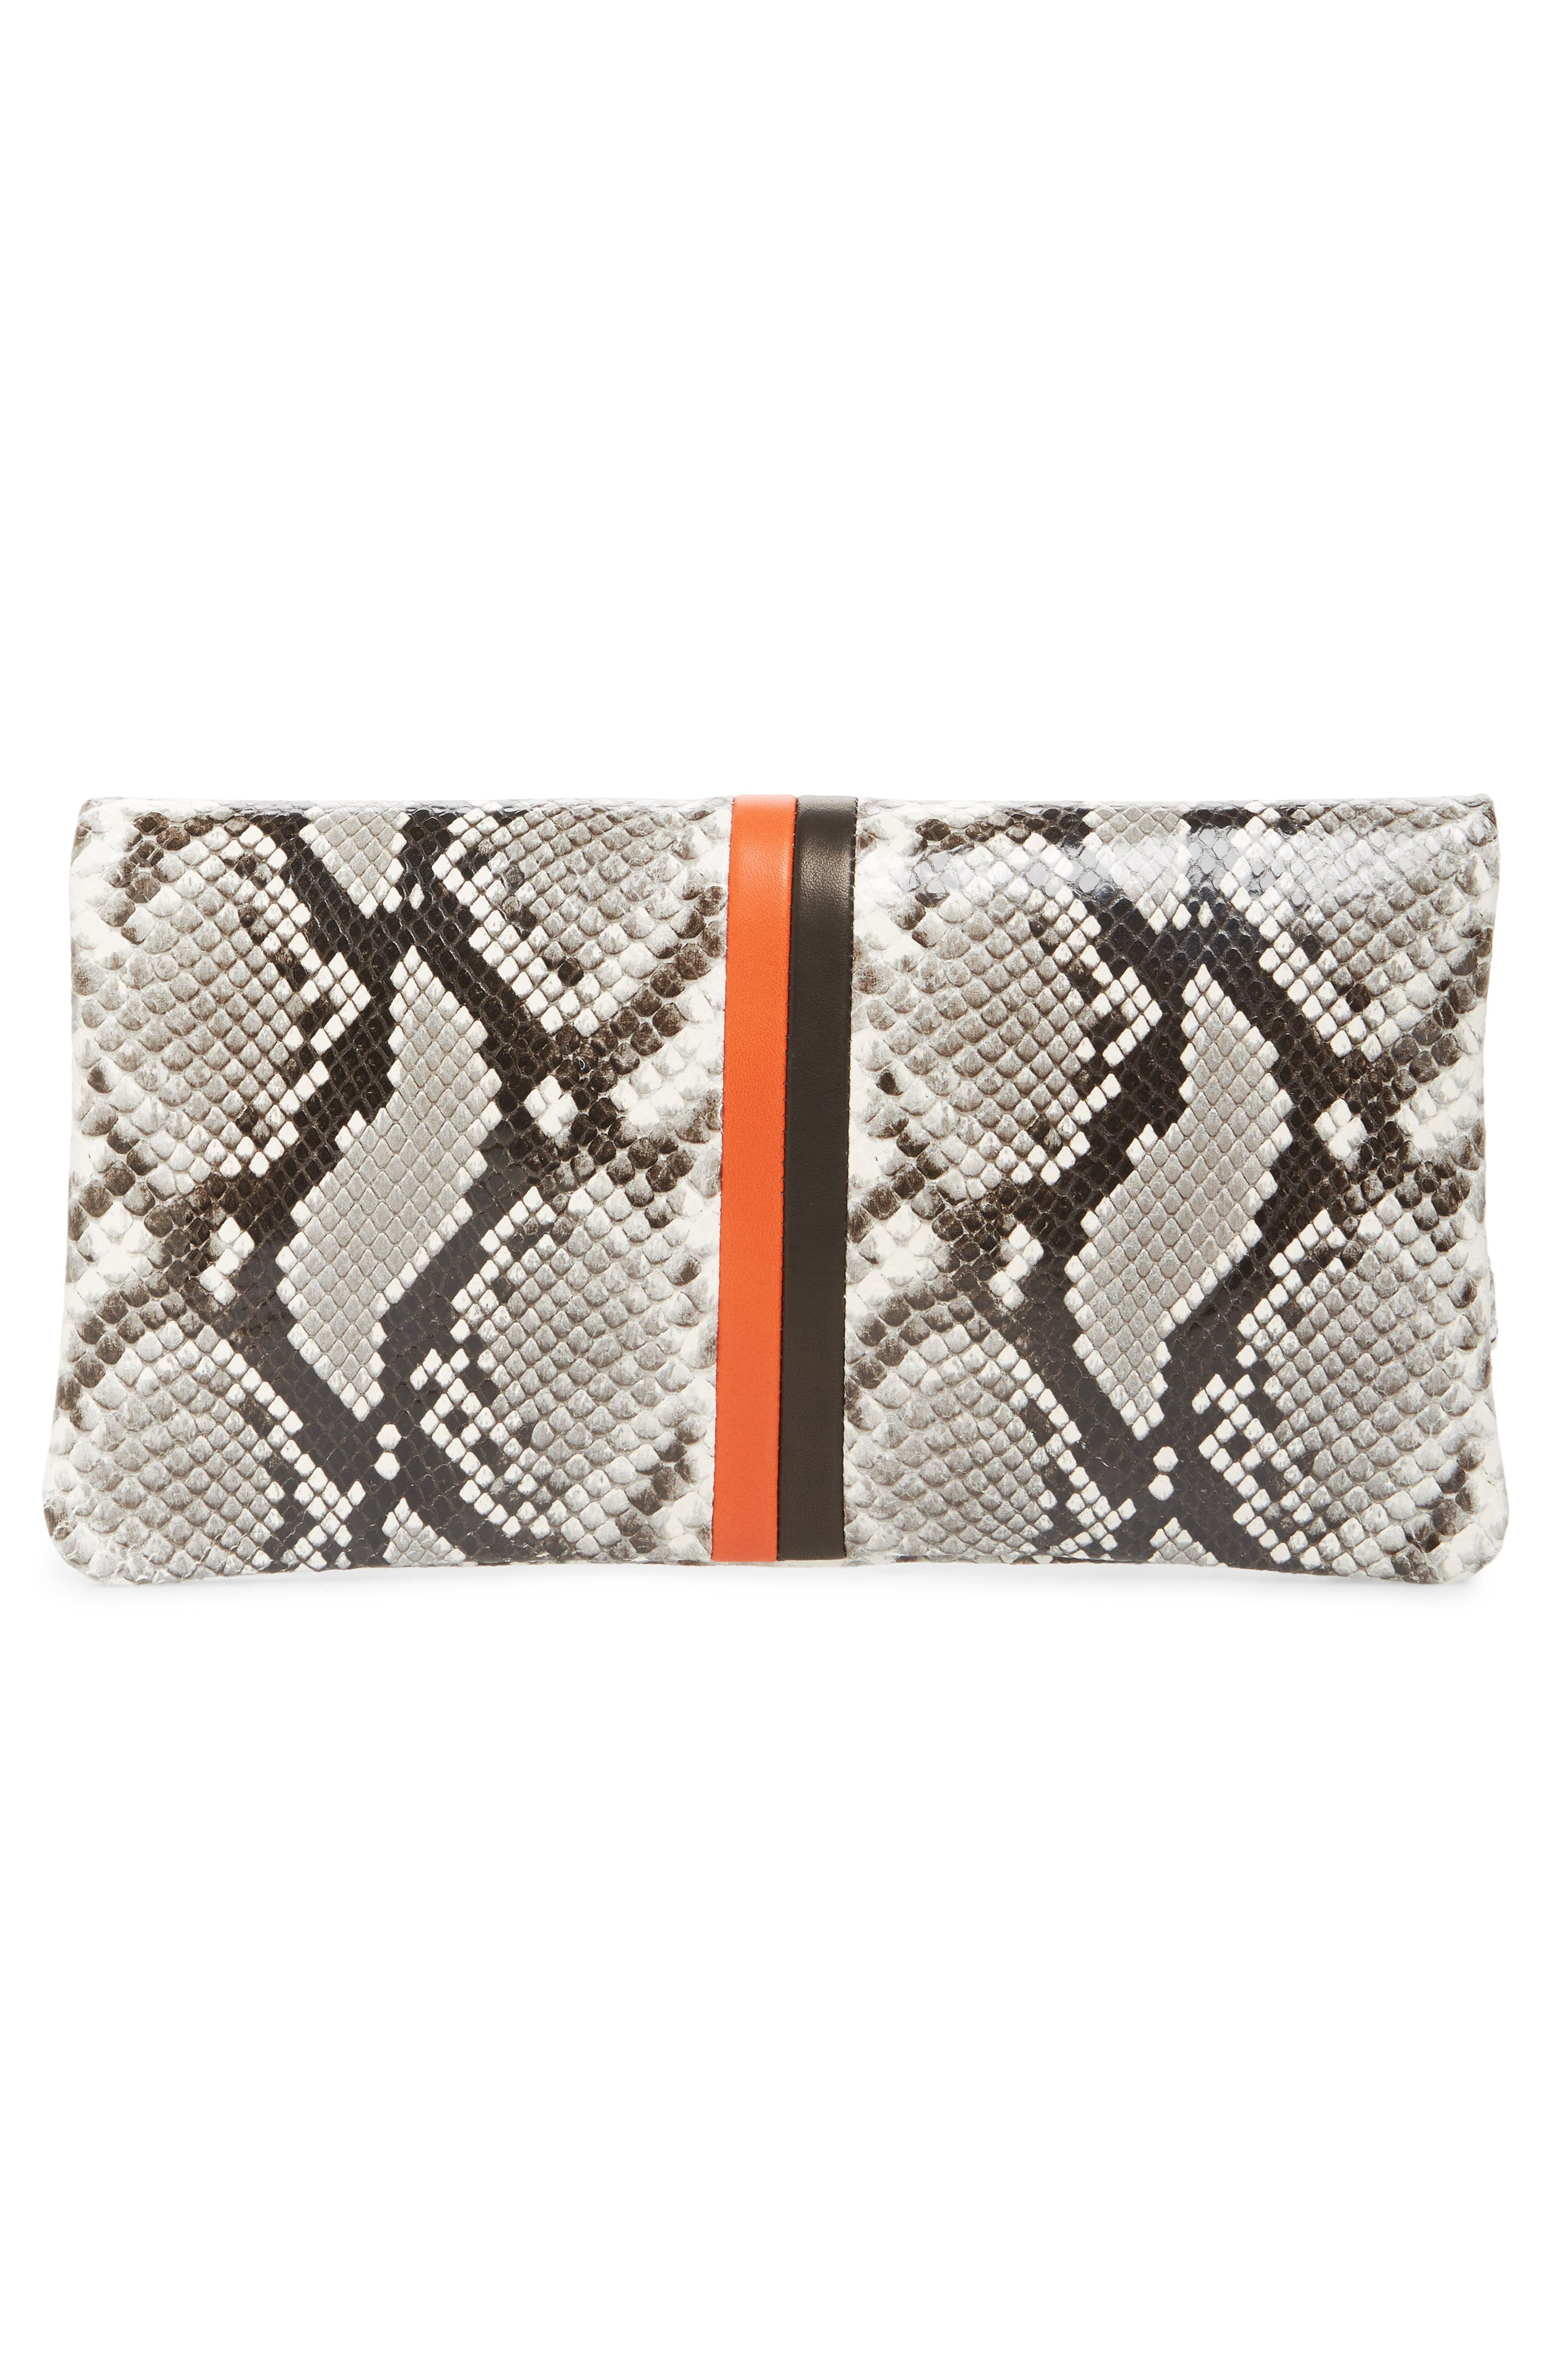 Python Embossed Leather Foldover Clutch,                             Alternate thumbnail 3, color,                             BLACK PYTHON WITH STRIPES